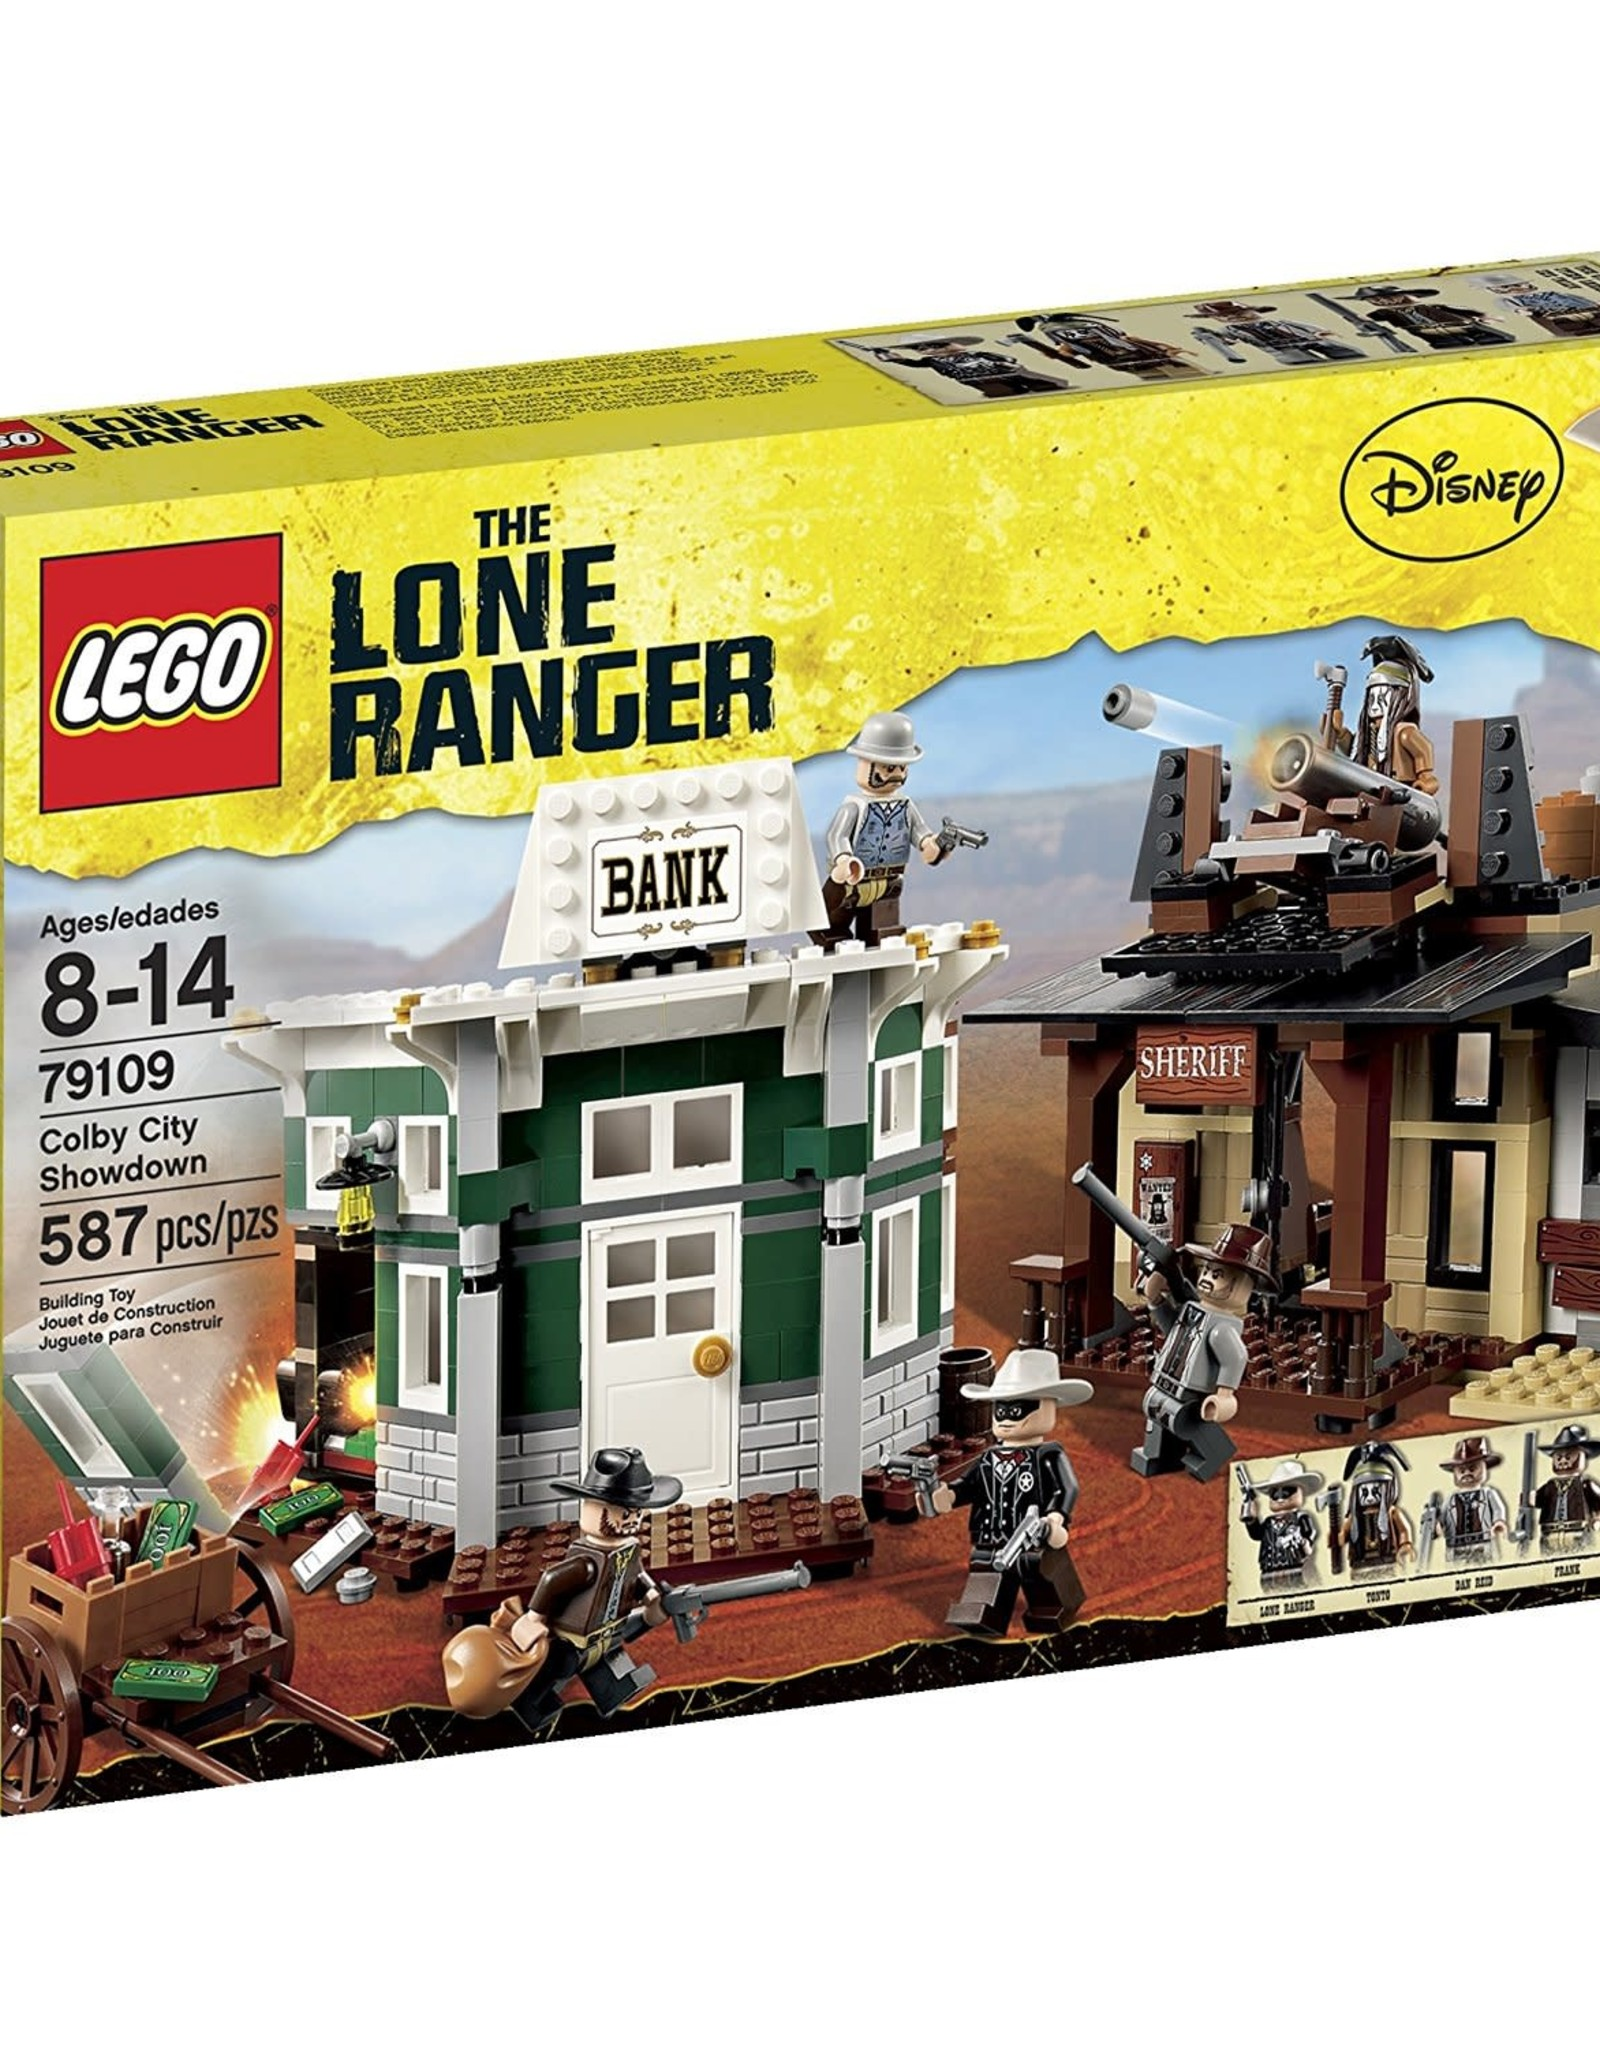 LEGO LEGO 79109 Colby City Showdown LONE RANGER